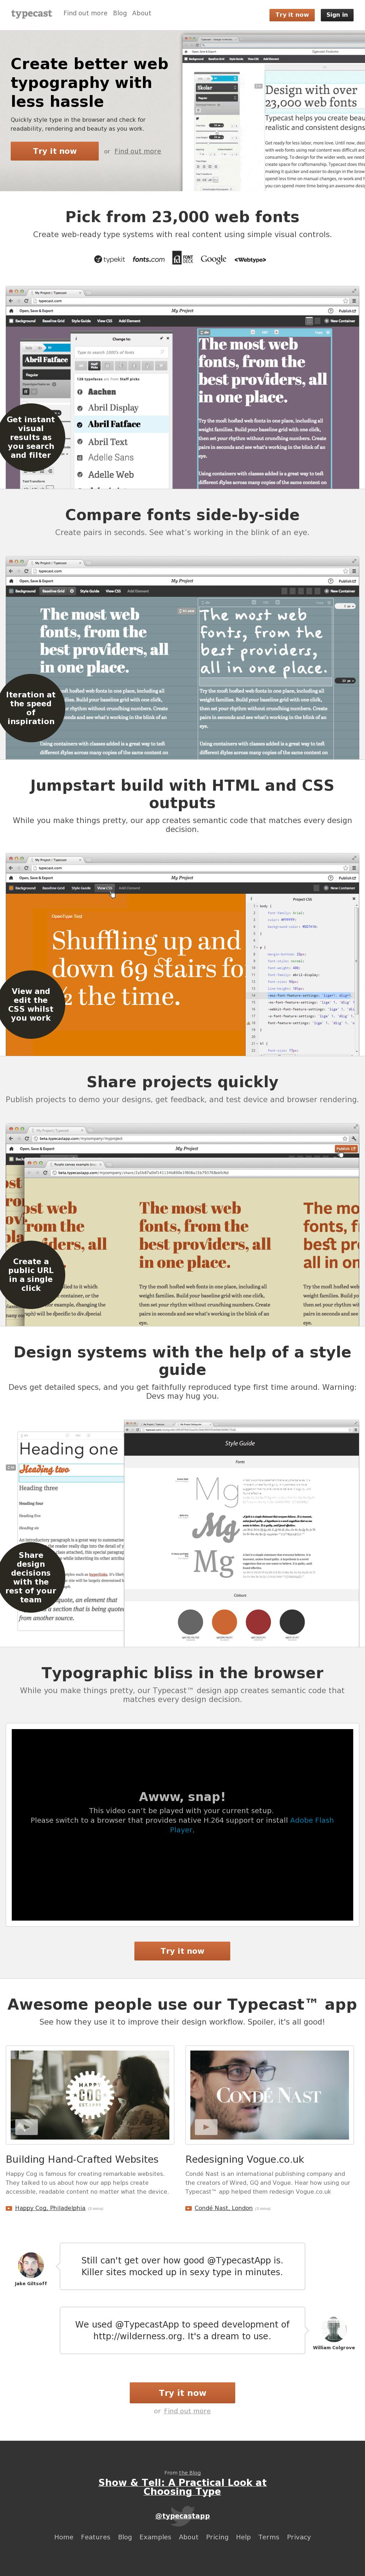 Quickly style type in the browser and